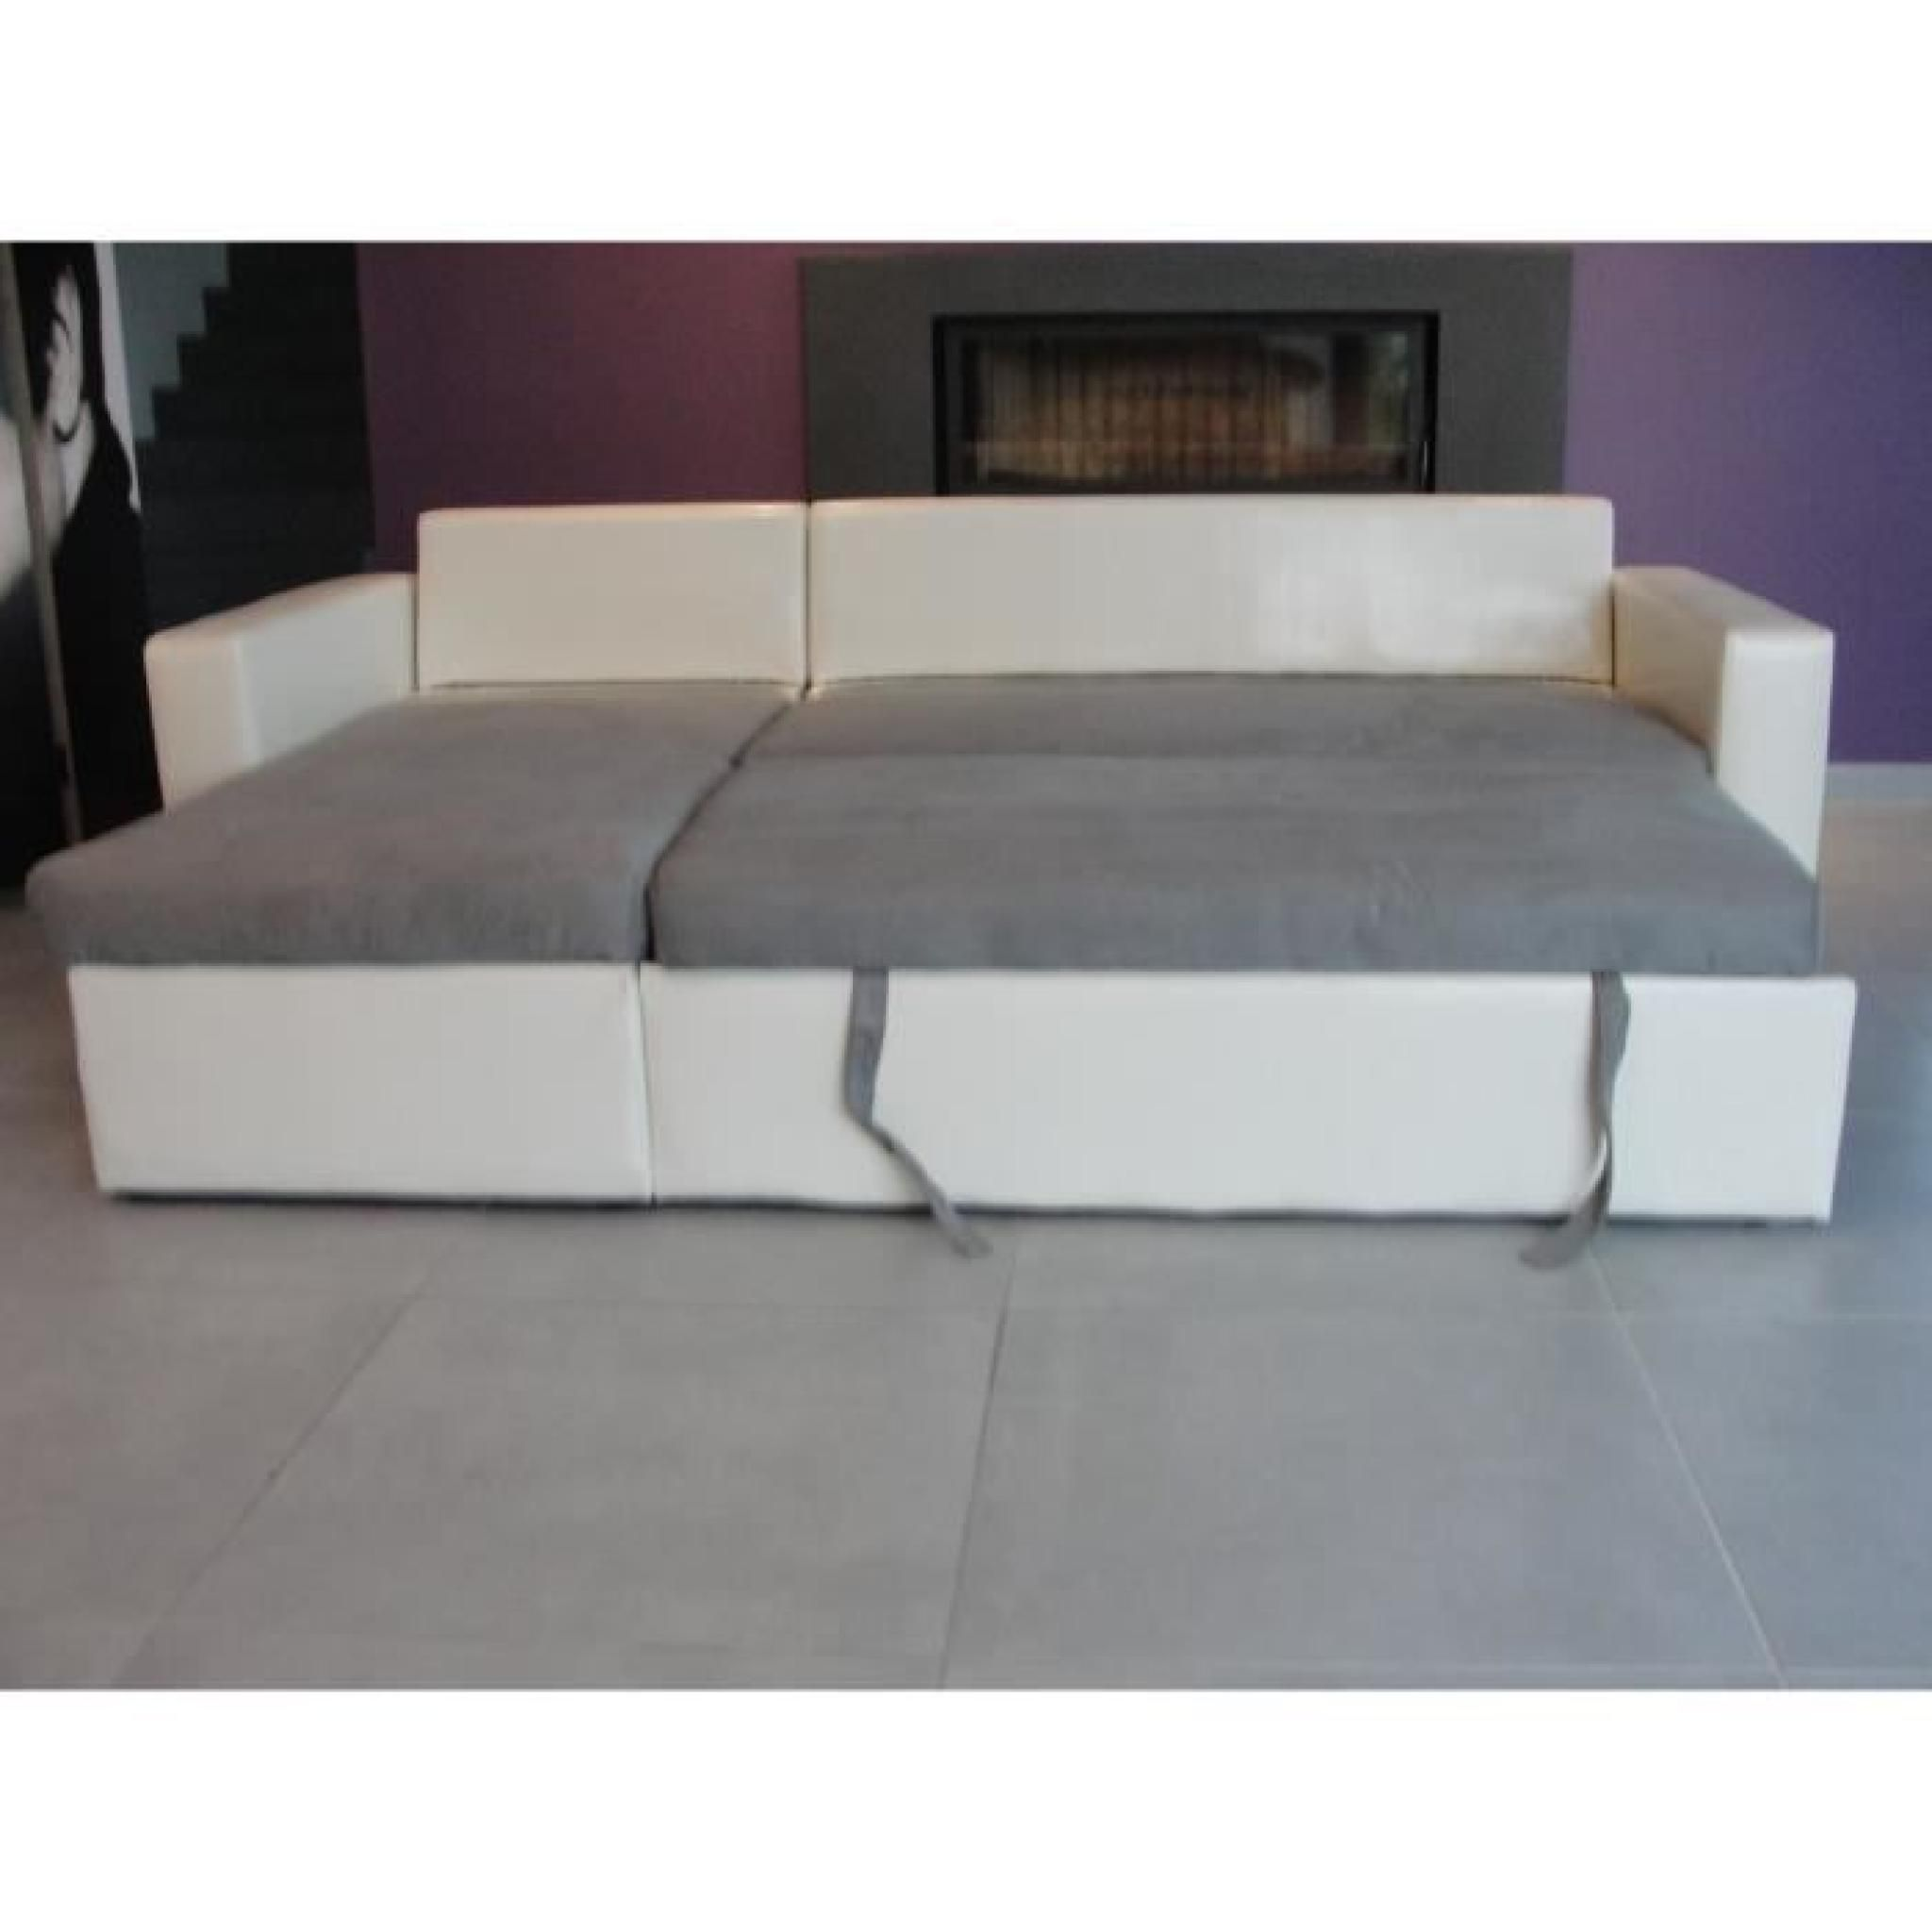 Canape D Angle Convertible Pas Cher Chest Furniture Transforming Furniture Reupholster Furniture